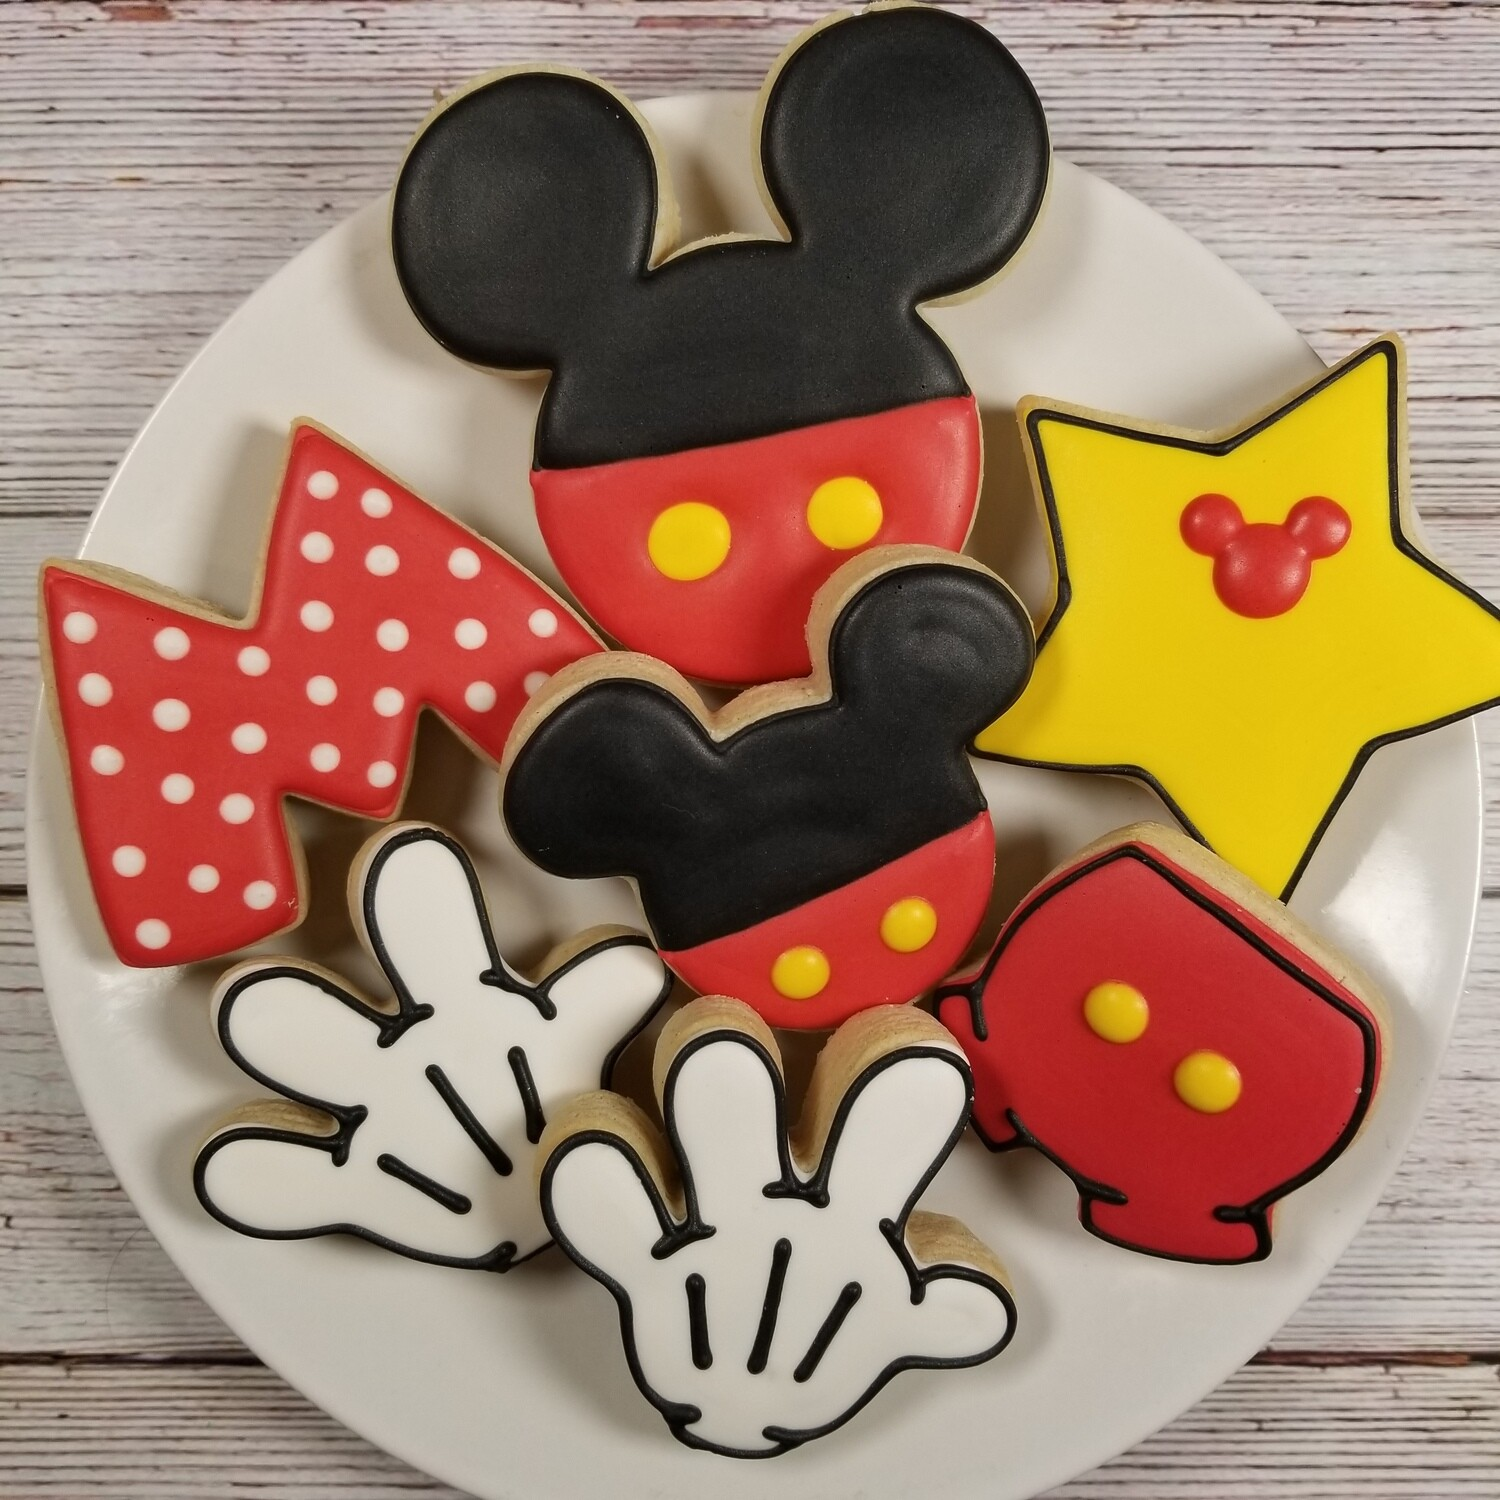 'MICKEY MOUSE Decorating Workshop - MONDAY, JULY 26th at 6 p.m. (THE COOKIE DECORATING STUDIO)